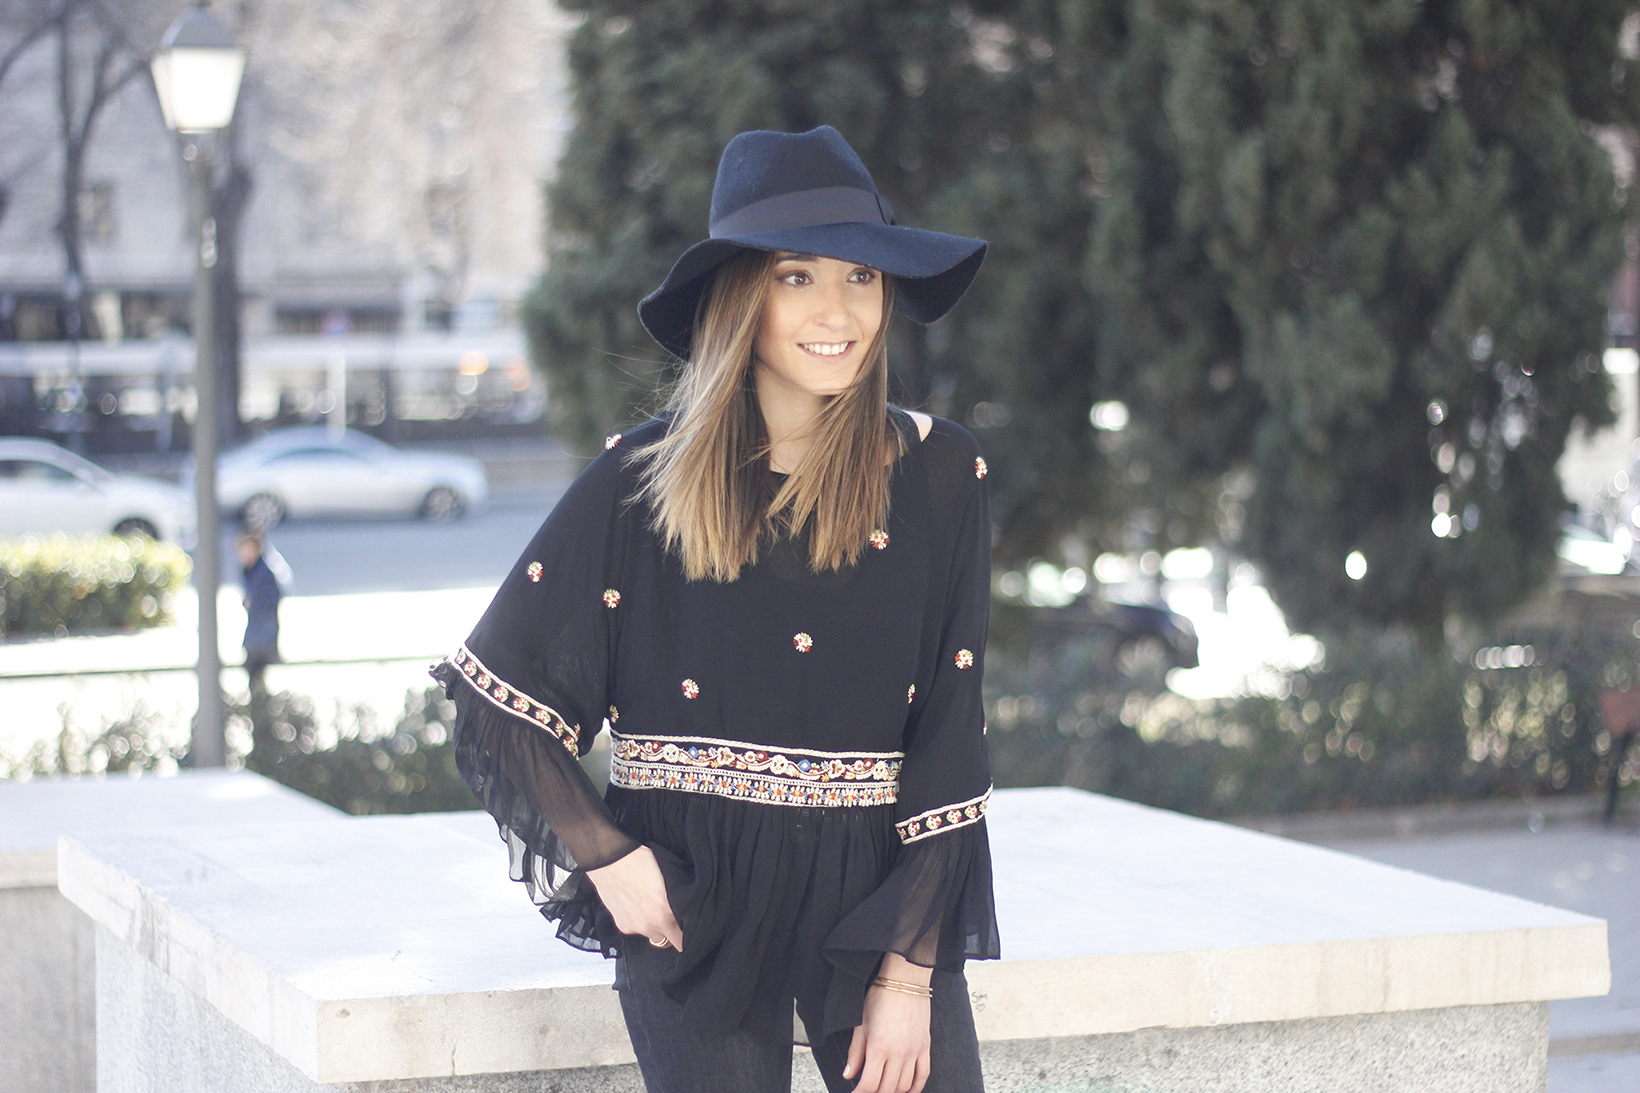 flared jeans boho blouse hat accessories outfit fashion06